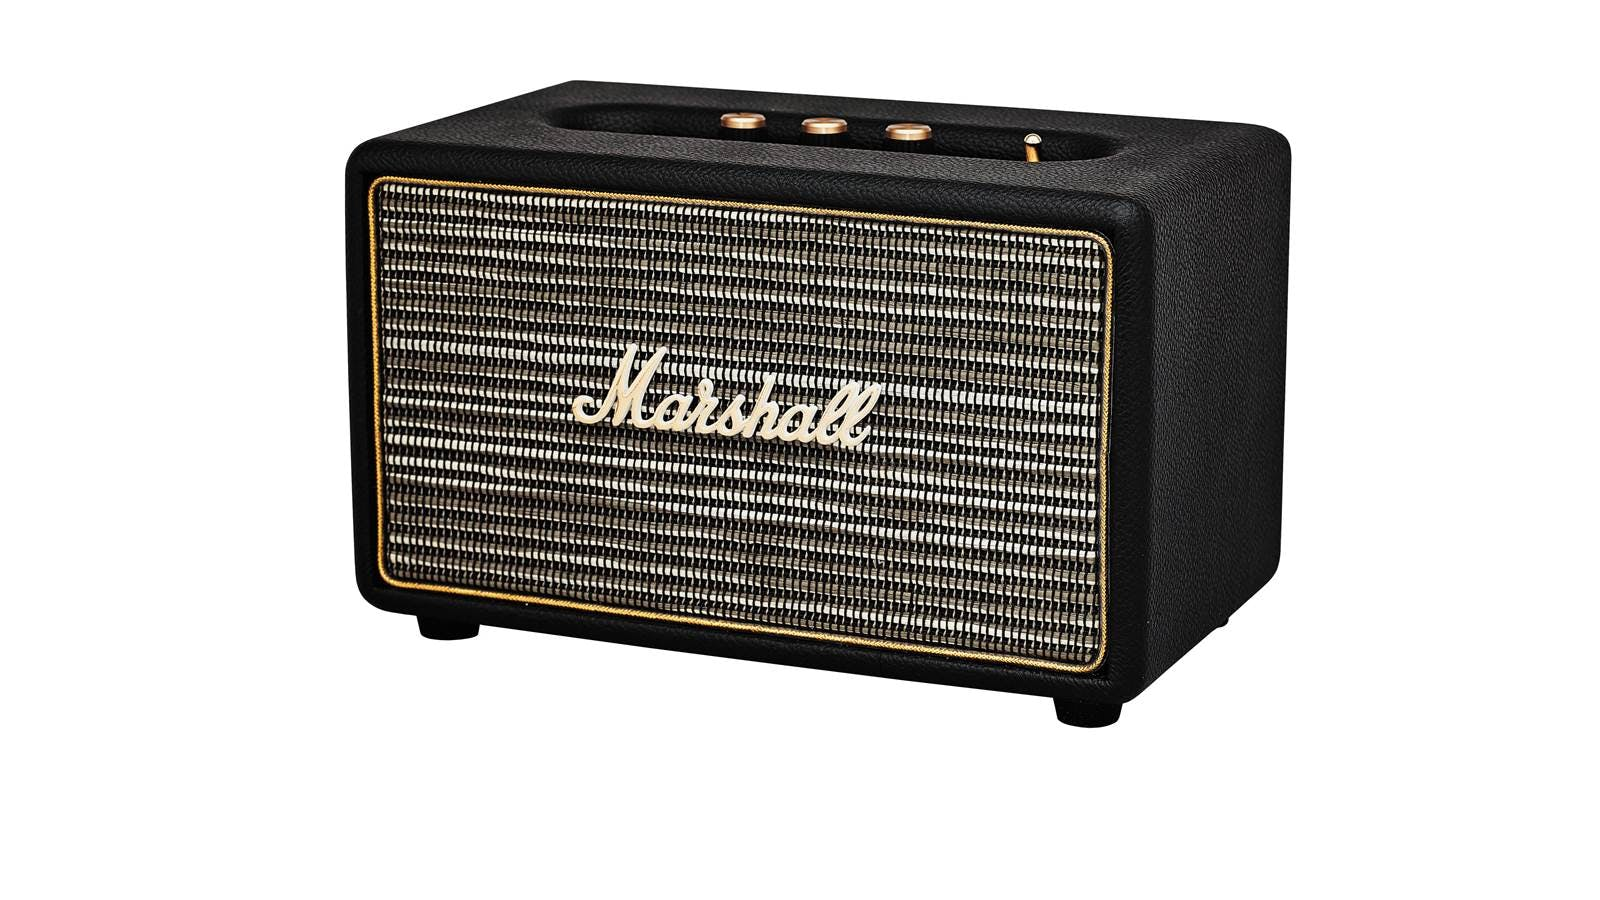 Marshall Acton Bluetooth Speaker - Black e4279092d6